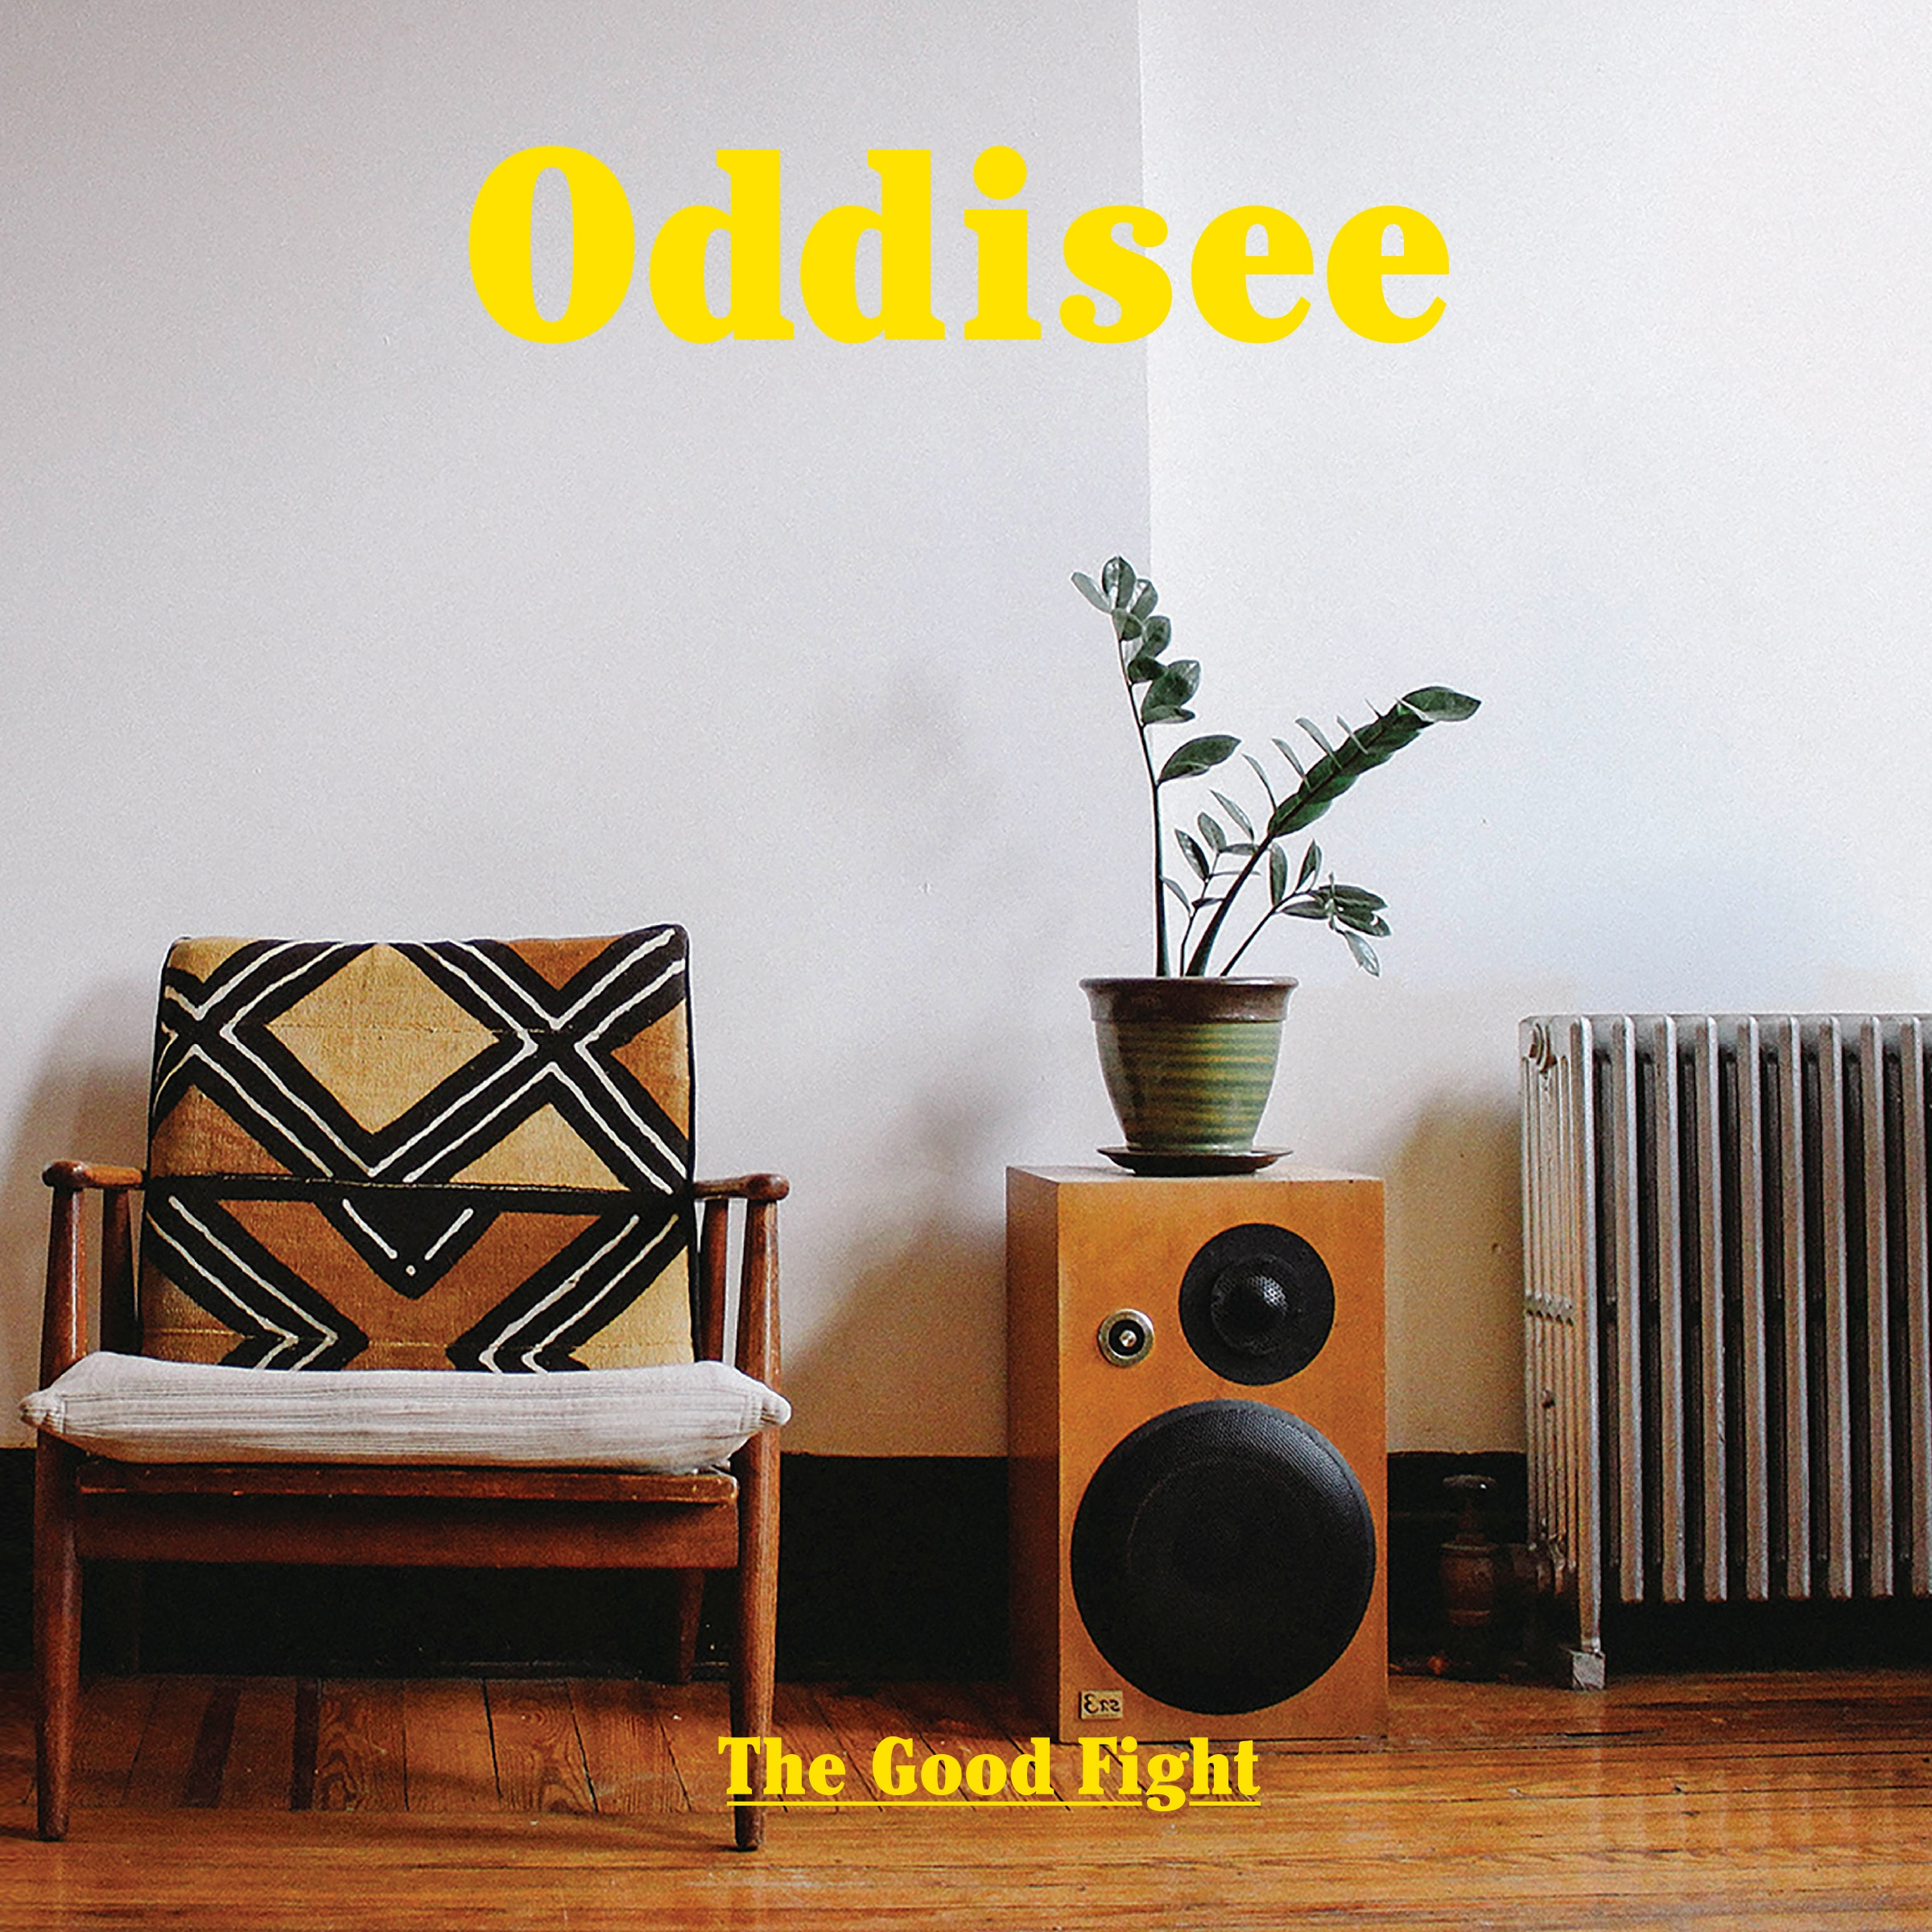 Oddisee_The_Good_Fight_Cover_Art_2400x_high